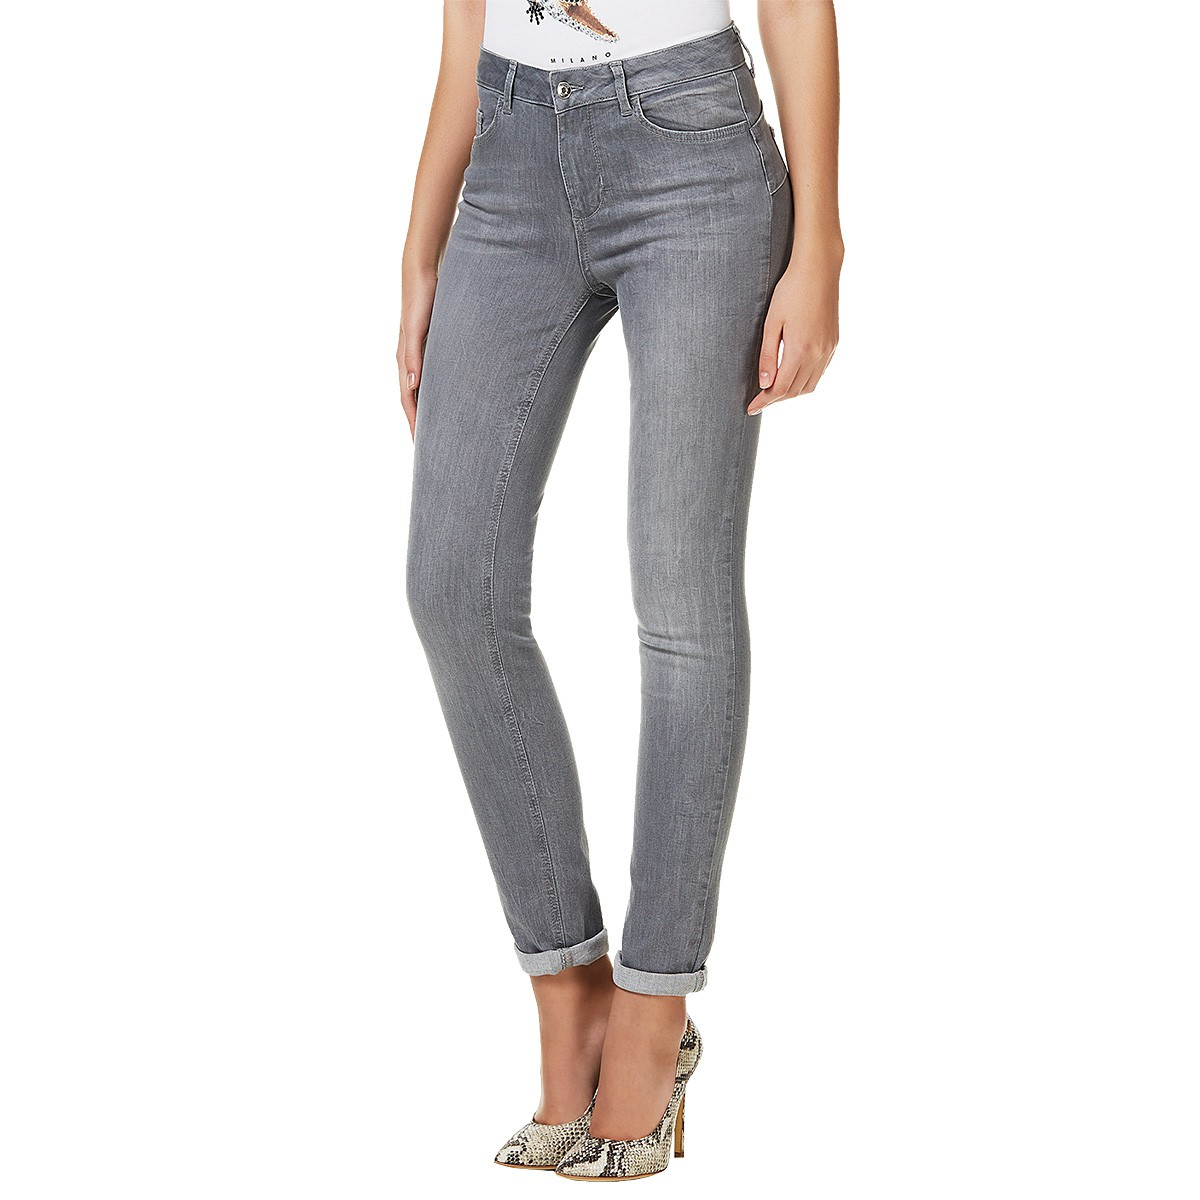 prezzo più basso c2c20 3a208 Jeans Liu-Jo Bottom Up Magnetic Woman - Leisure clothing